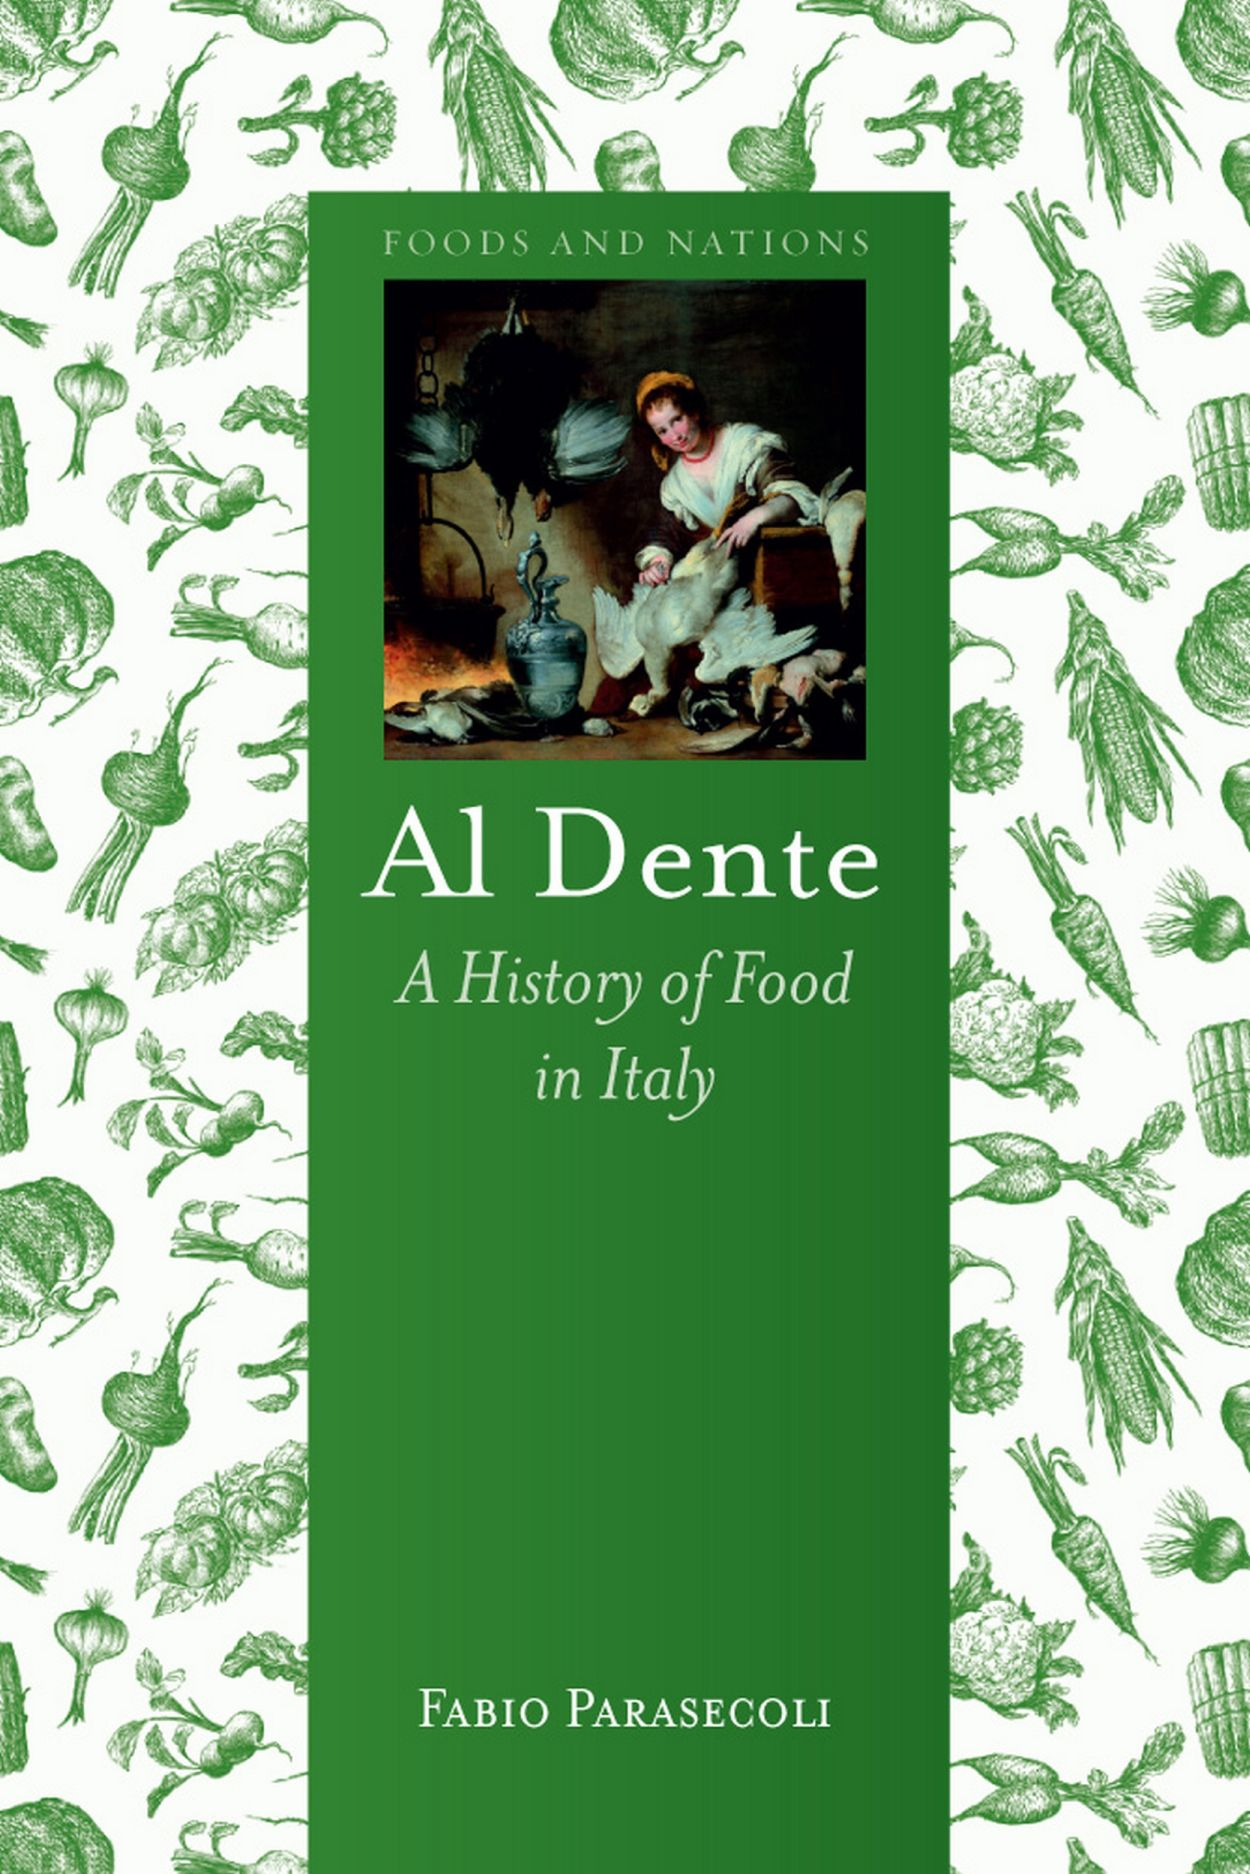 Al Dente: A History of Food in Italy